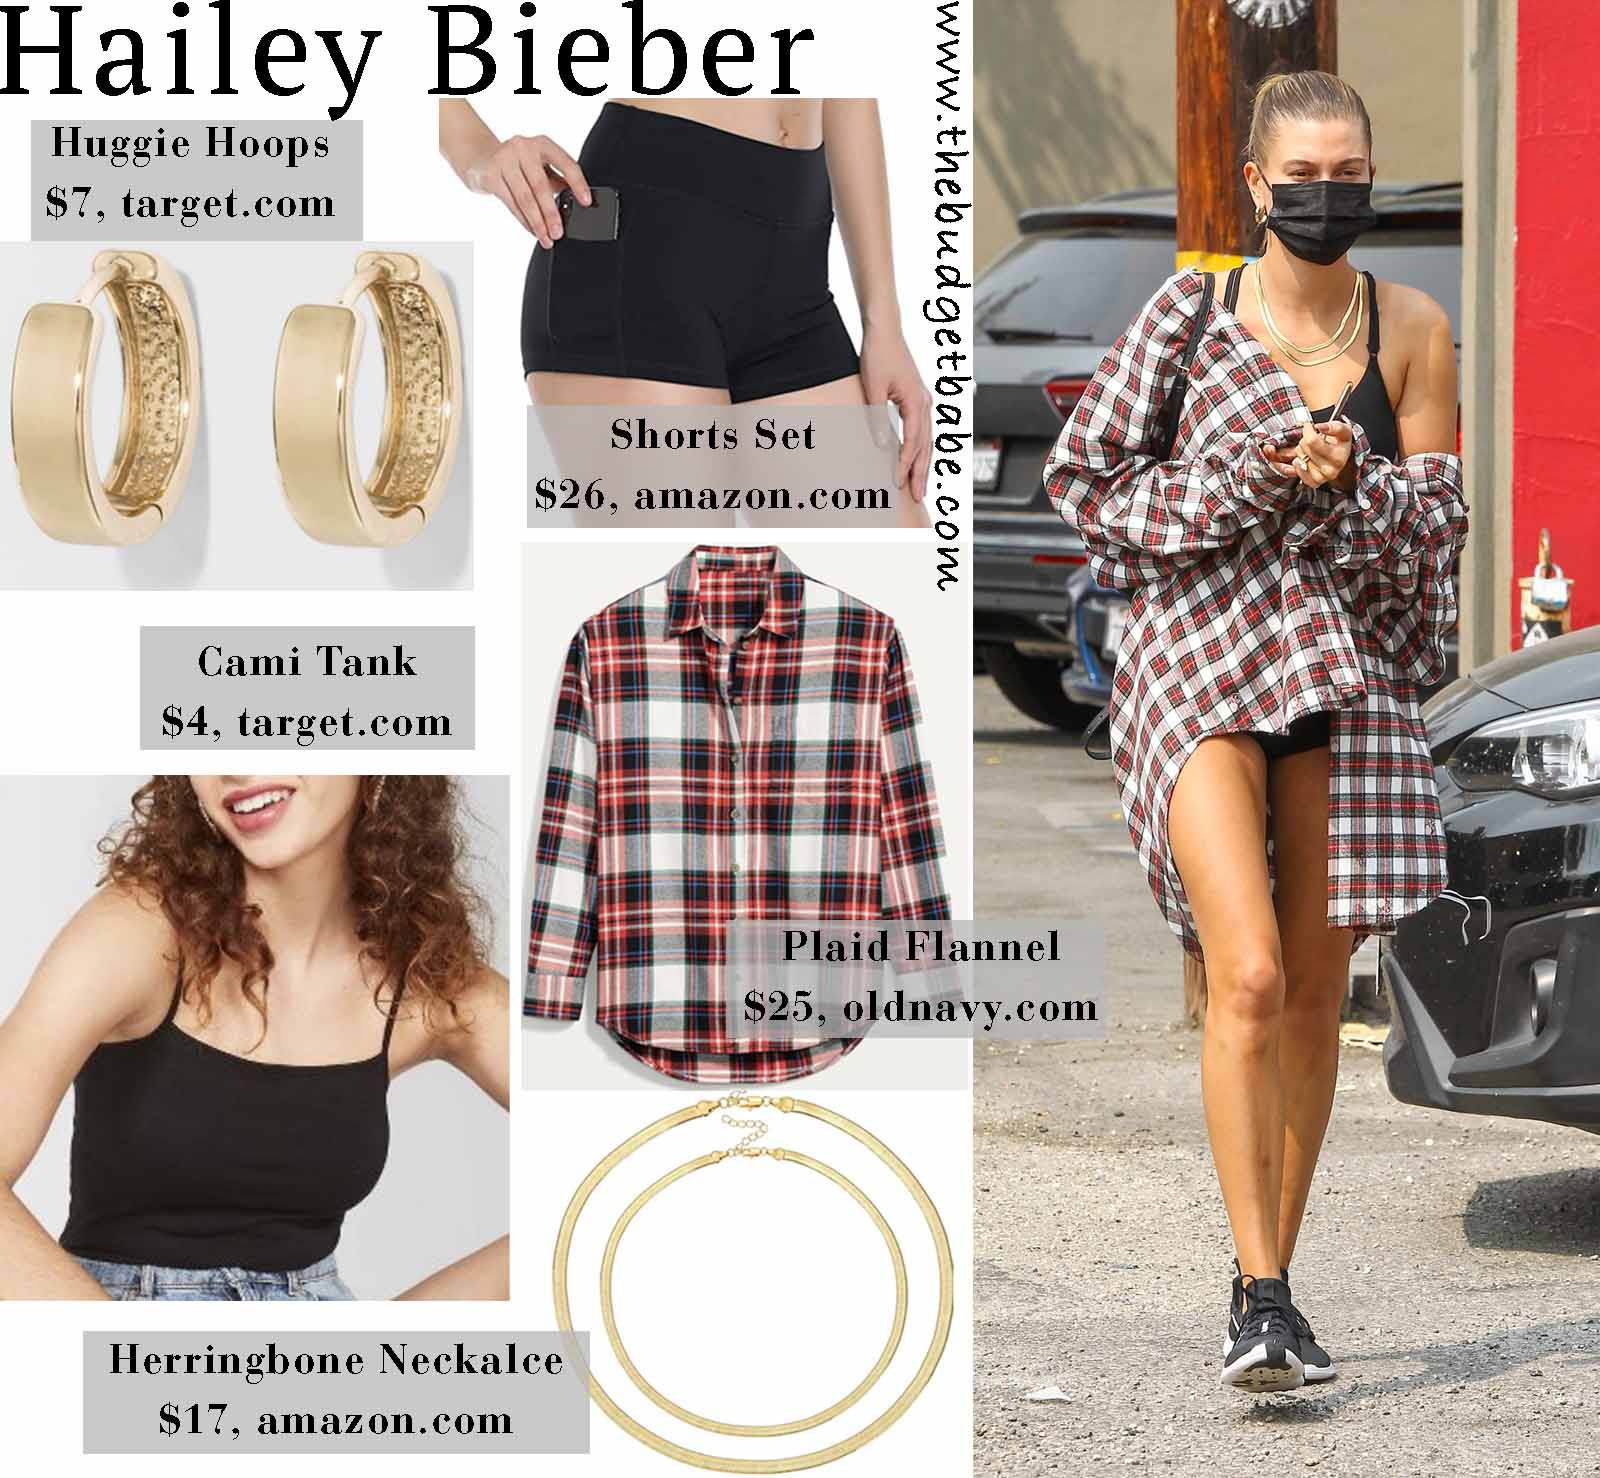 Hailey throws on plaid flannel!